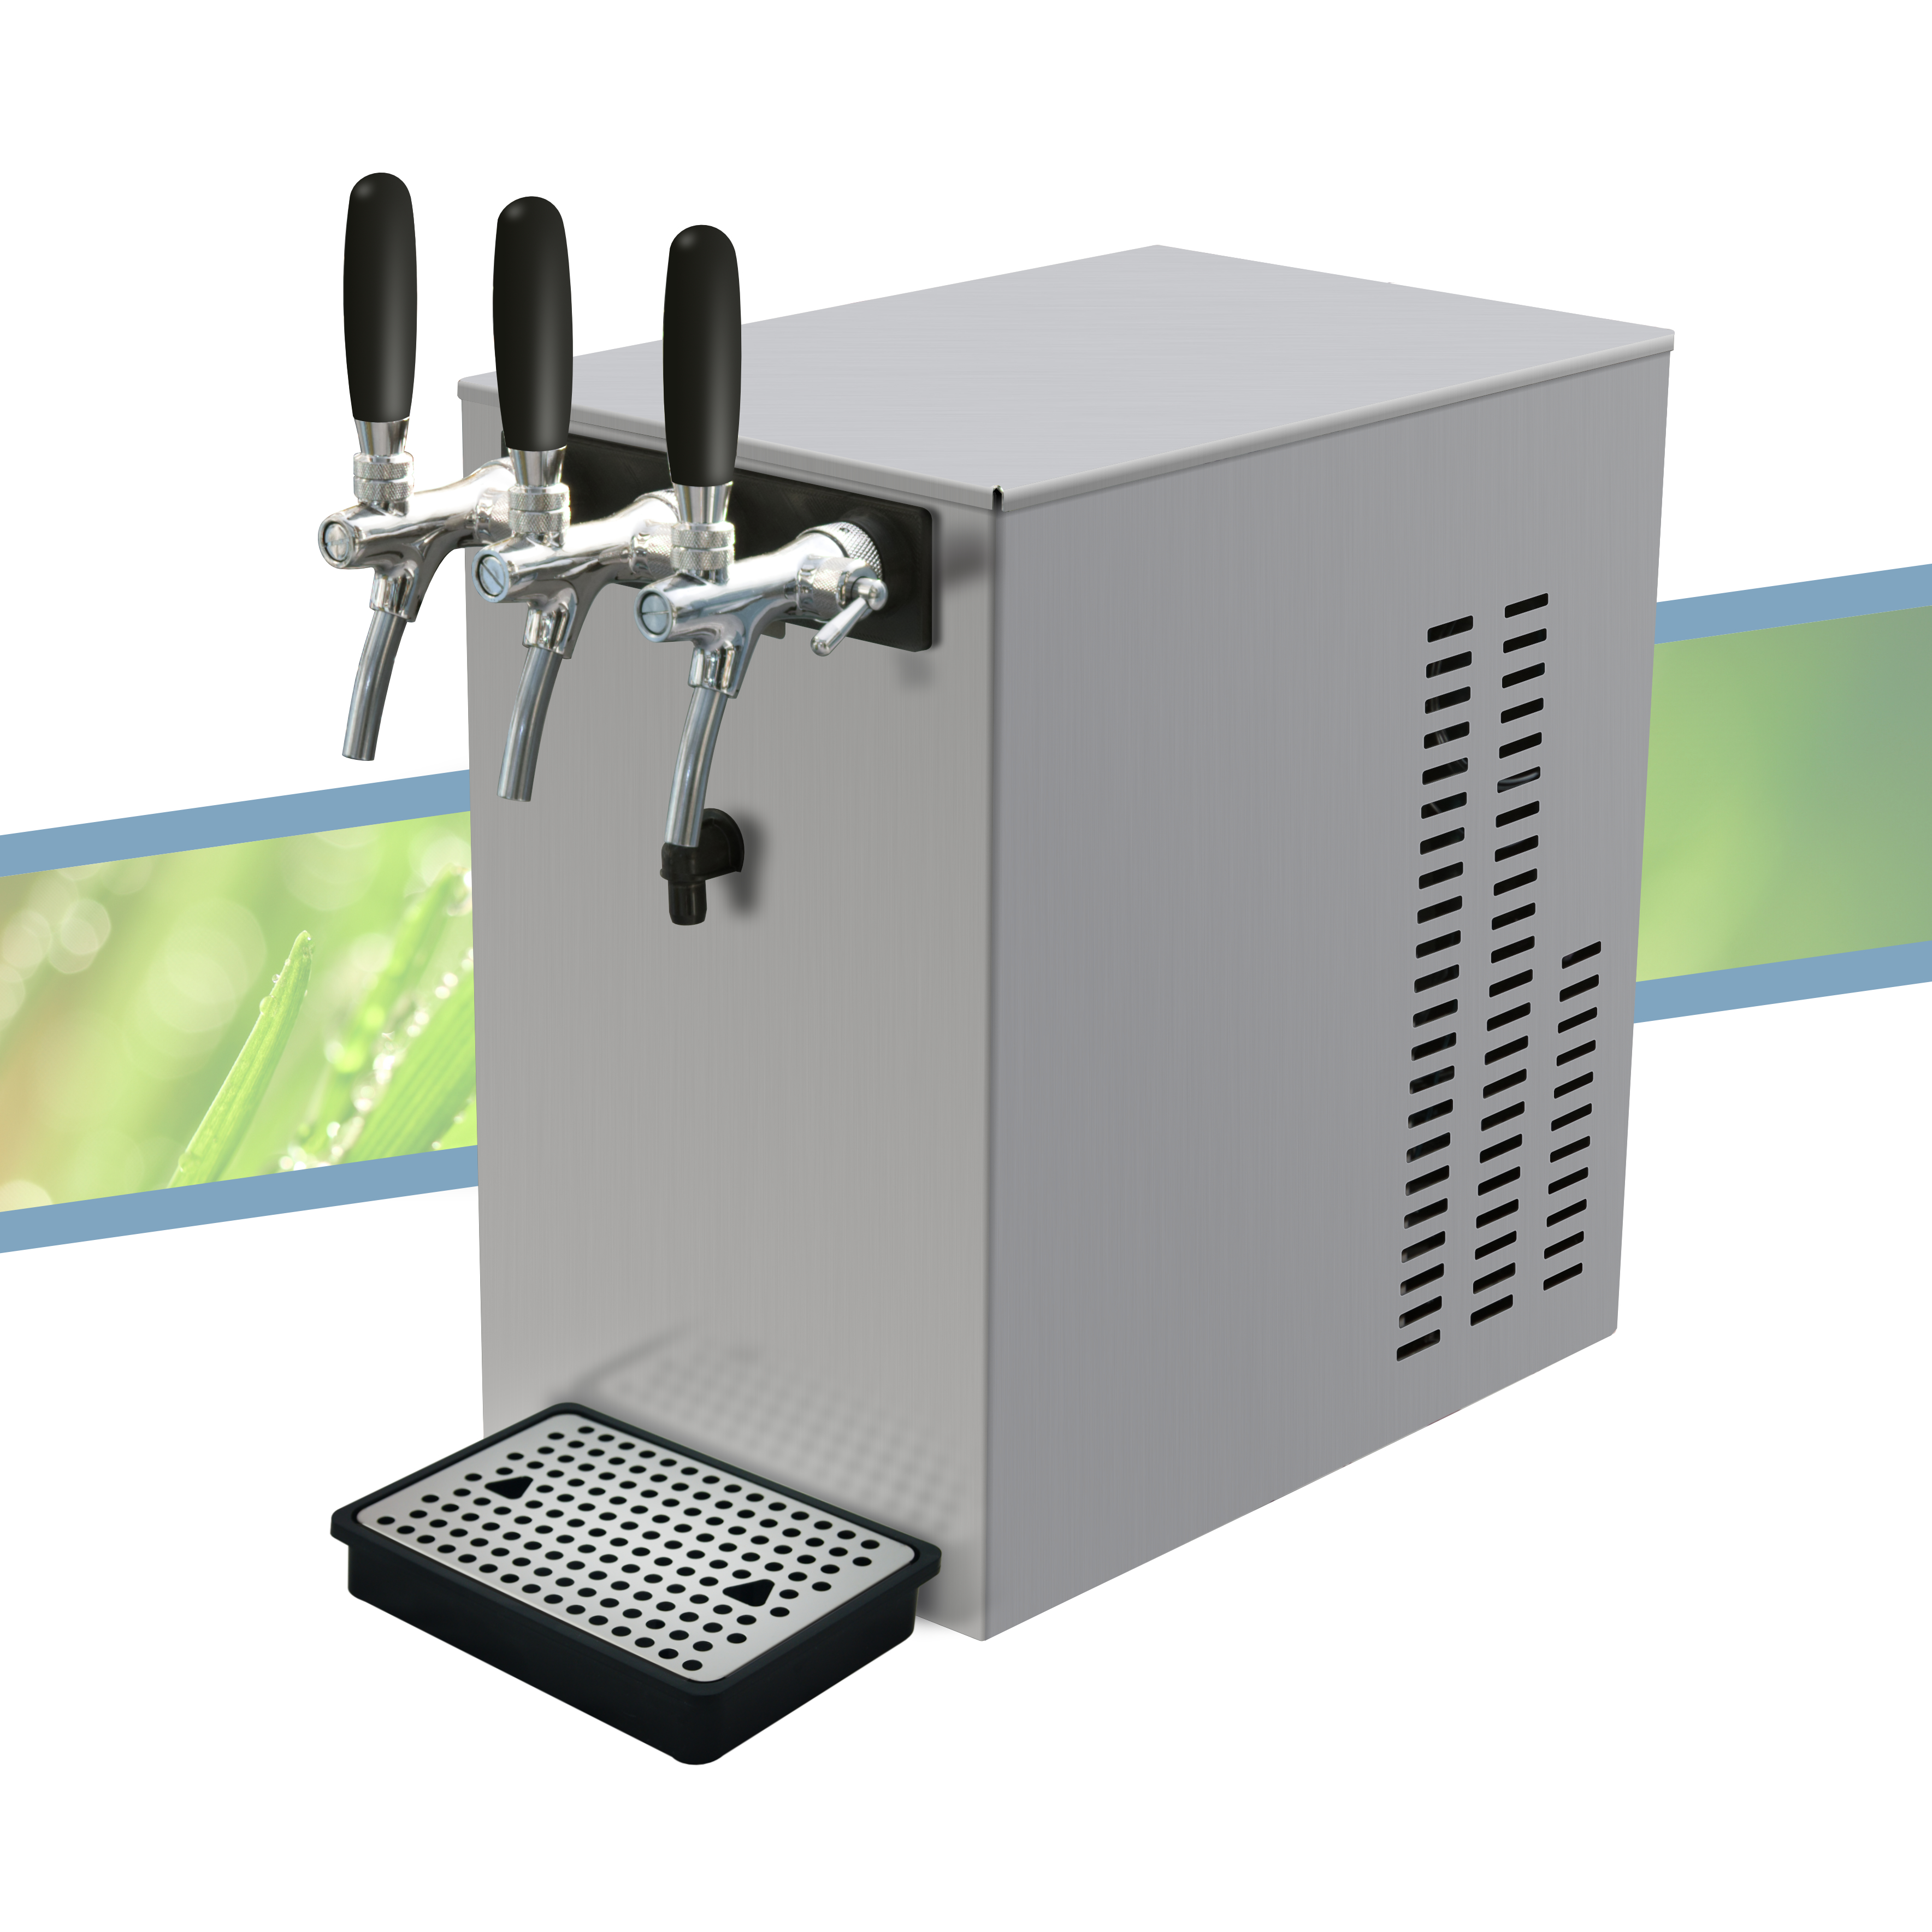 MF60 countertop water dispenser with taps